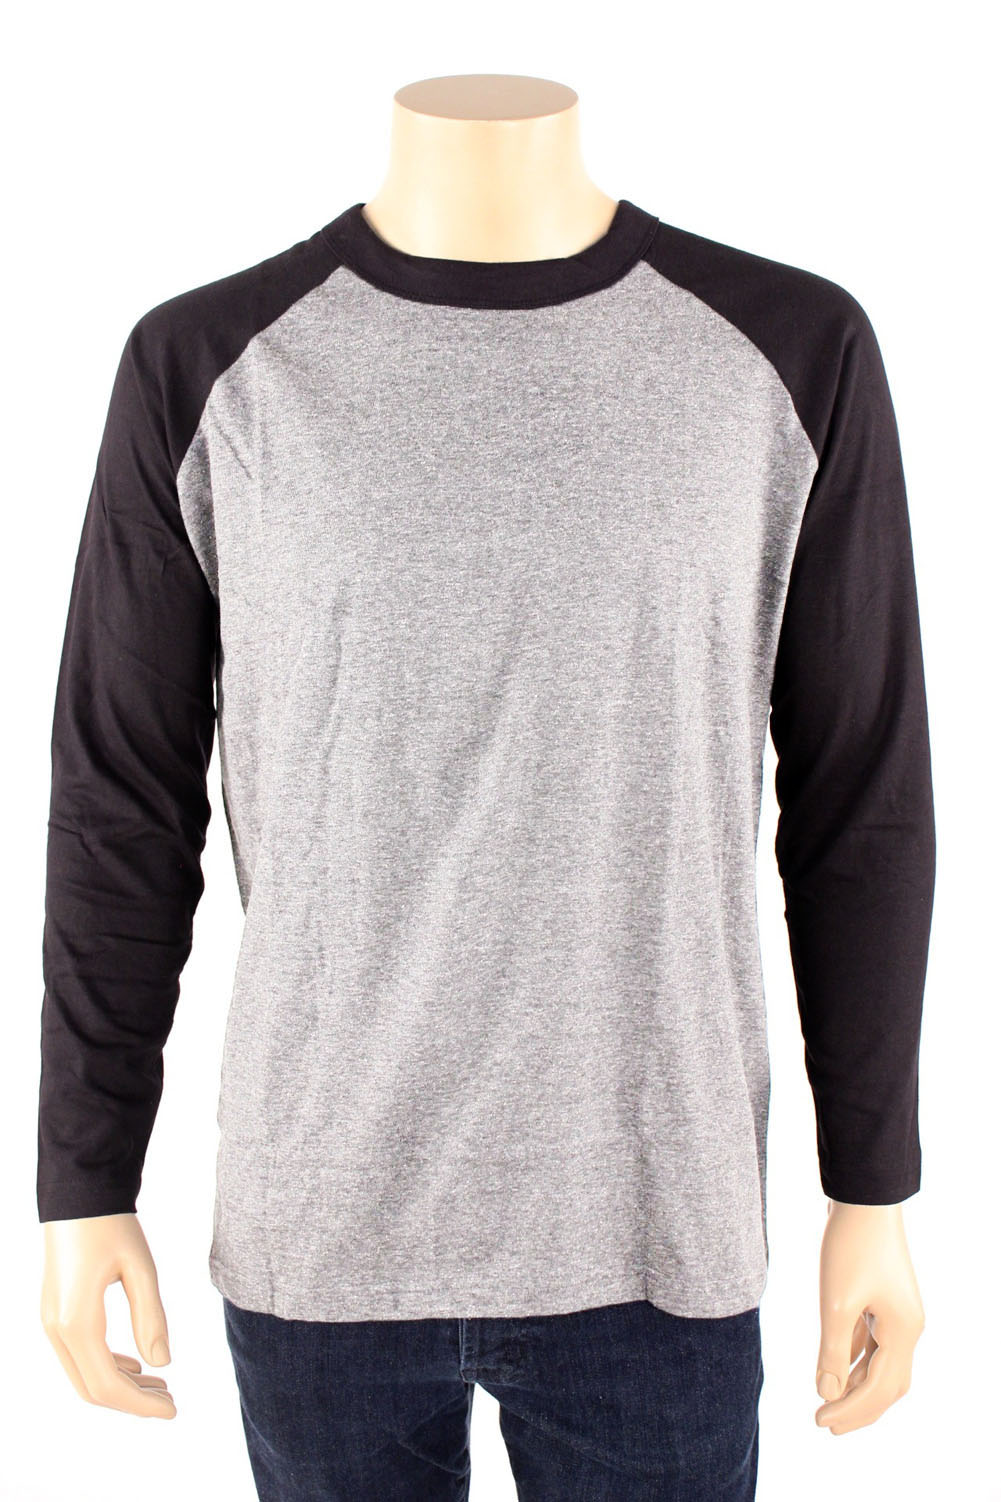 Long Sleeve Baseball T Shirt Jersey 100 Cotton Raglan Tee